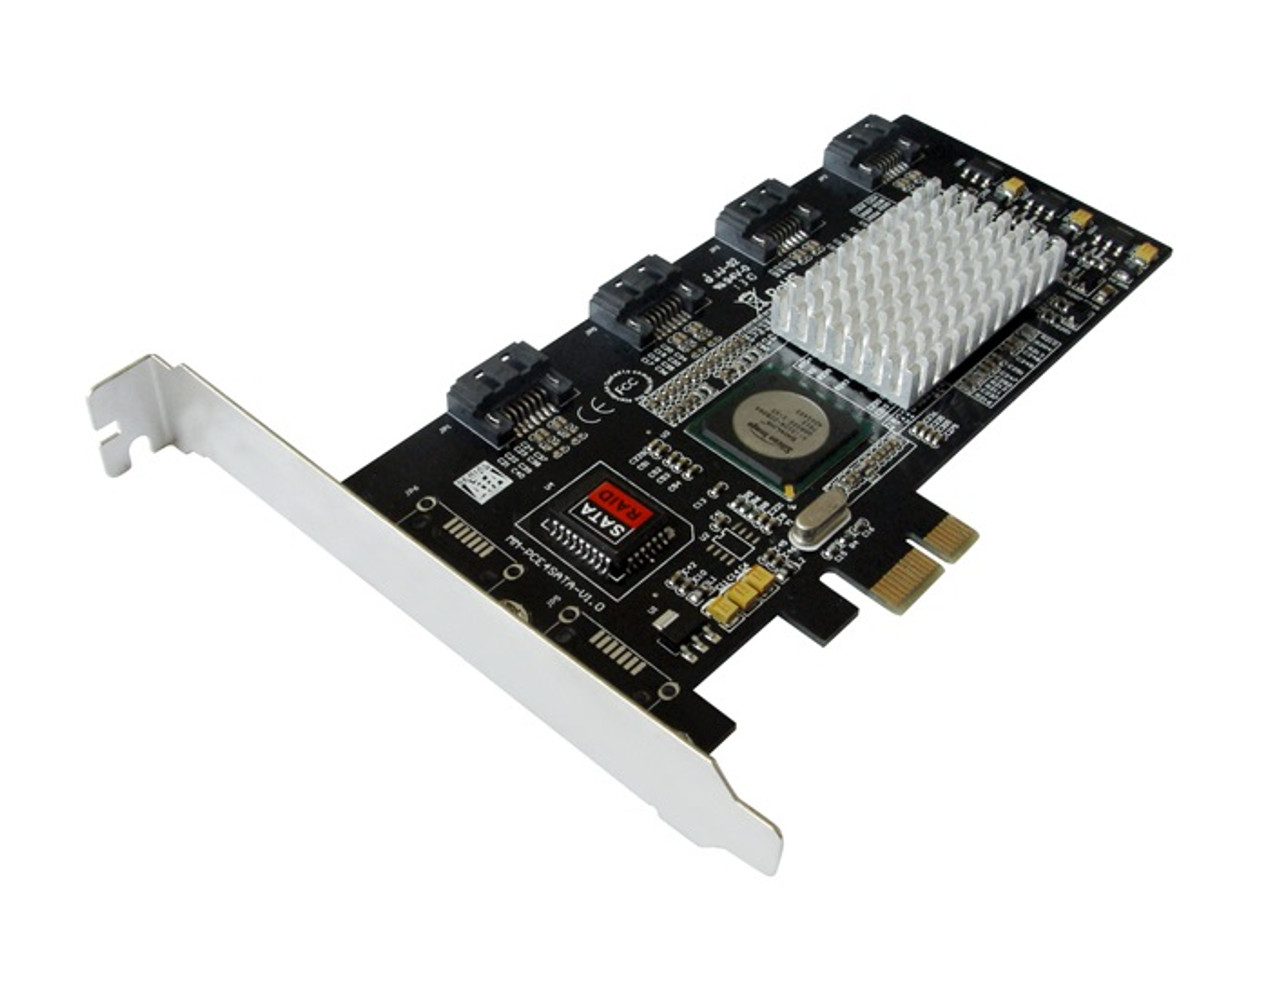 Part No: N0G12 - Dell PERC H700 Integrated SAS/SATA RAID Controller with  512MB Cache for PowerEdge R410